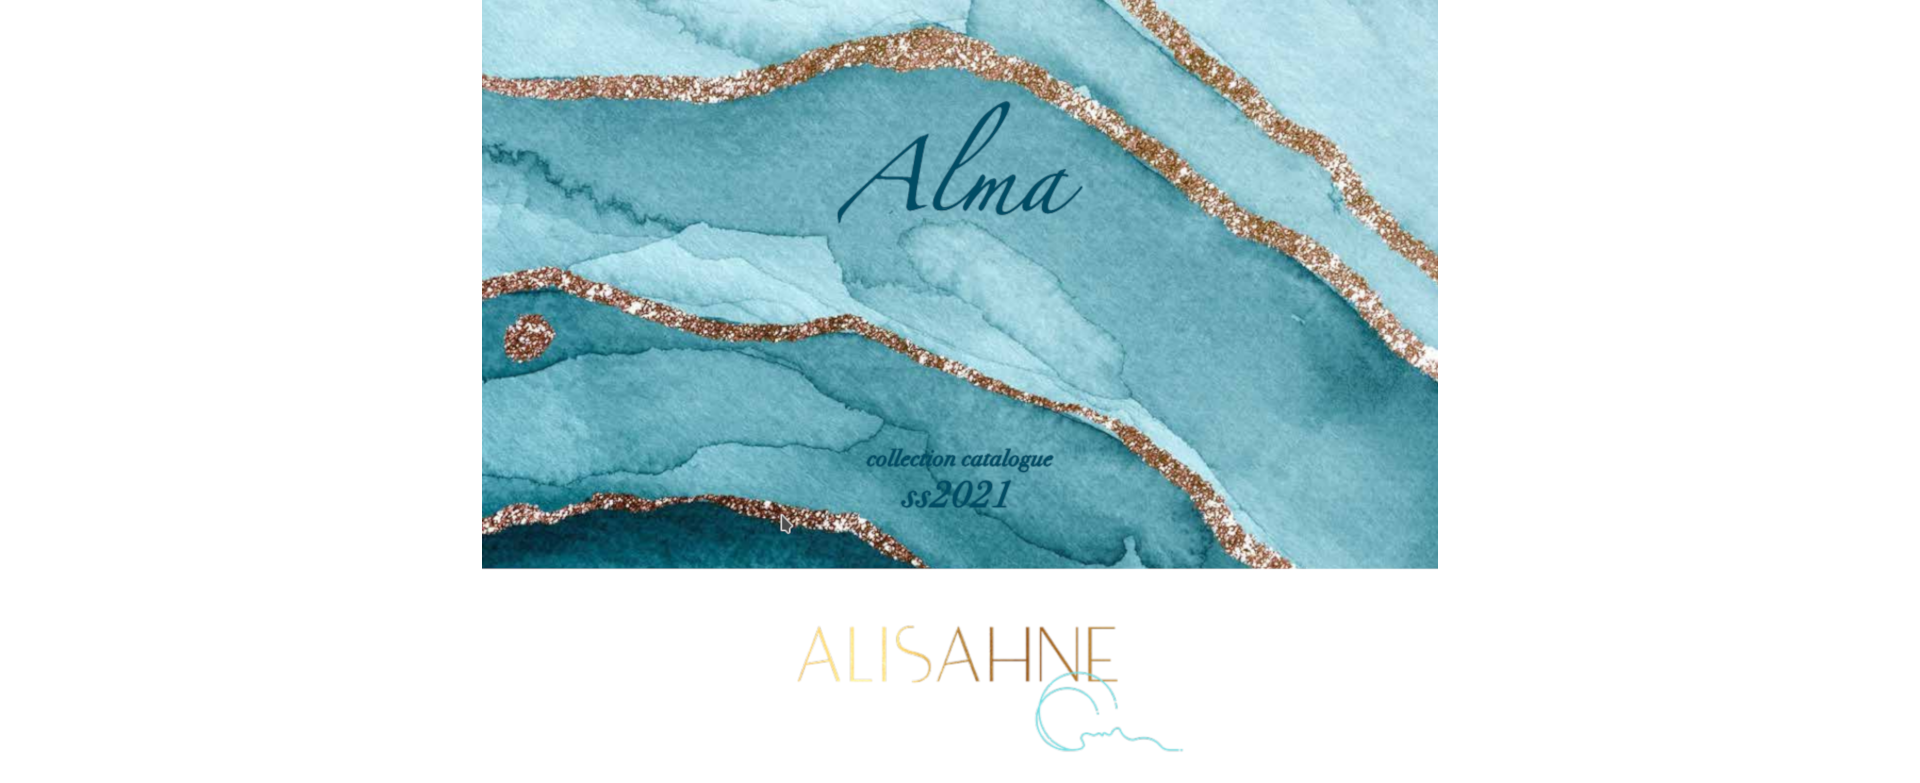 Alisahnecollection 2021